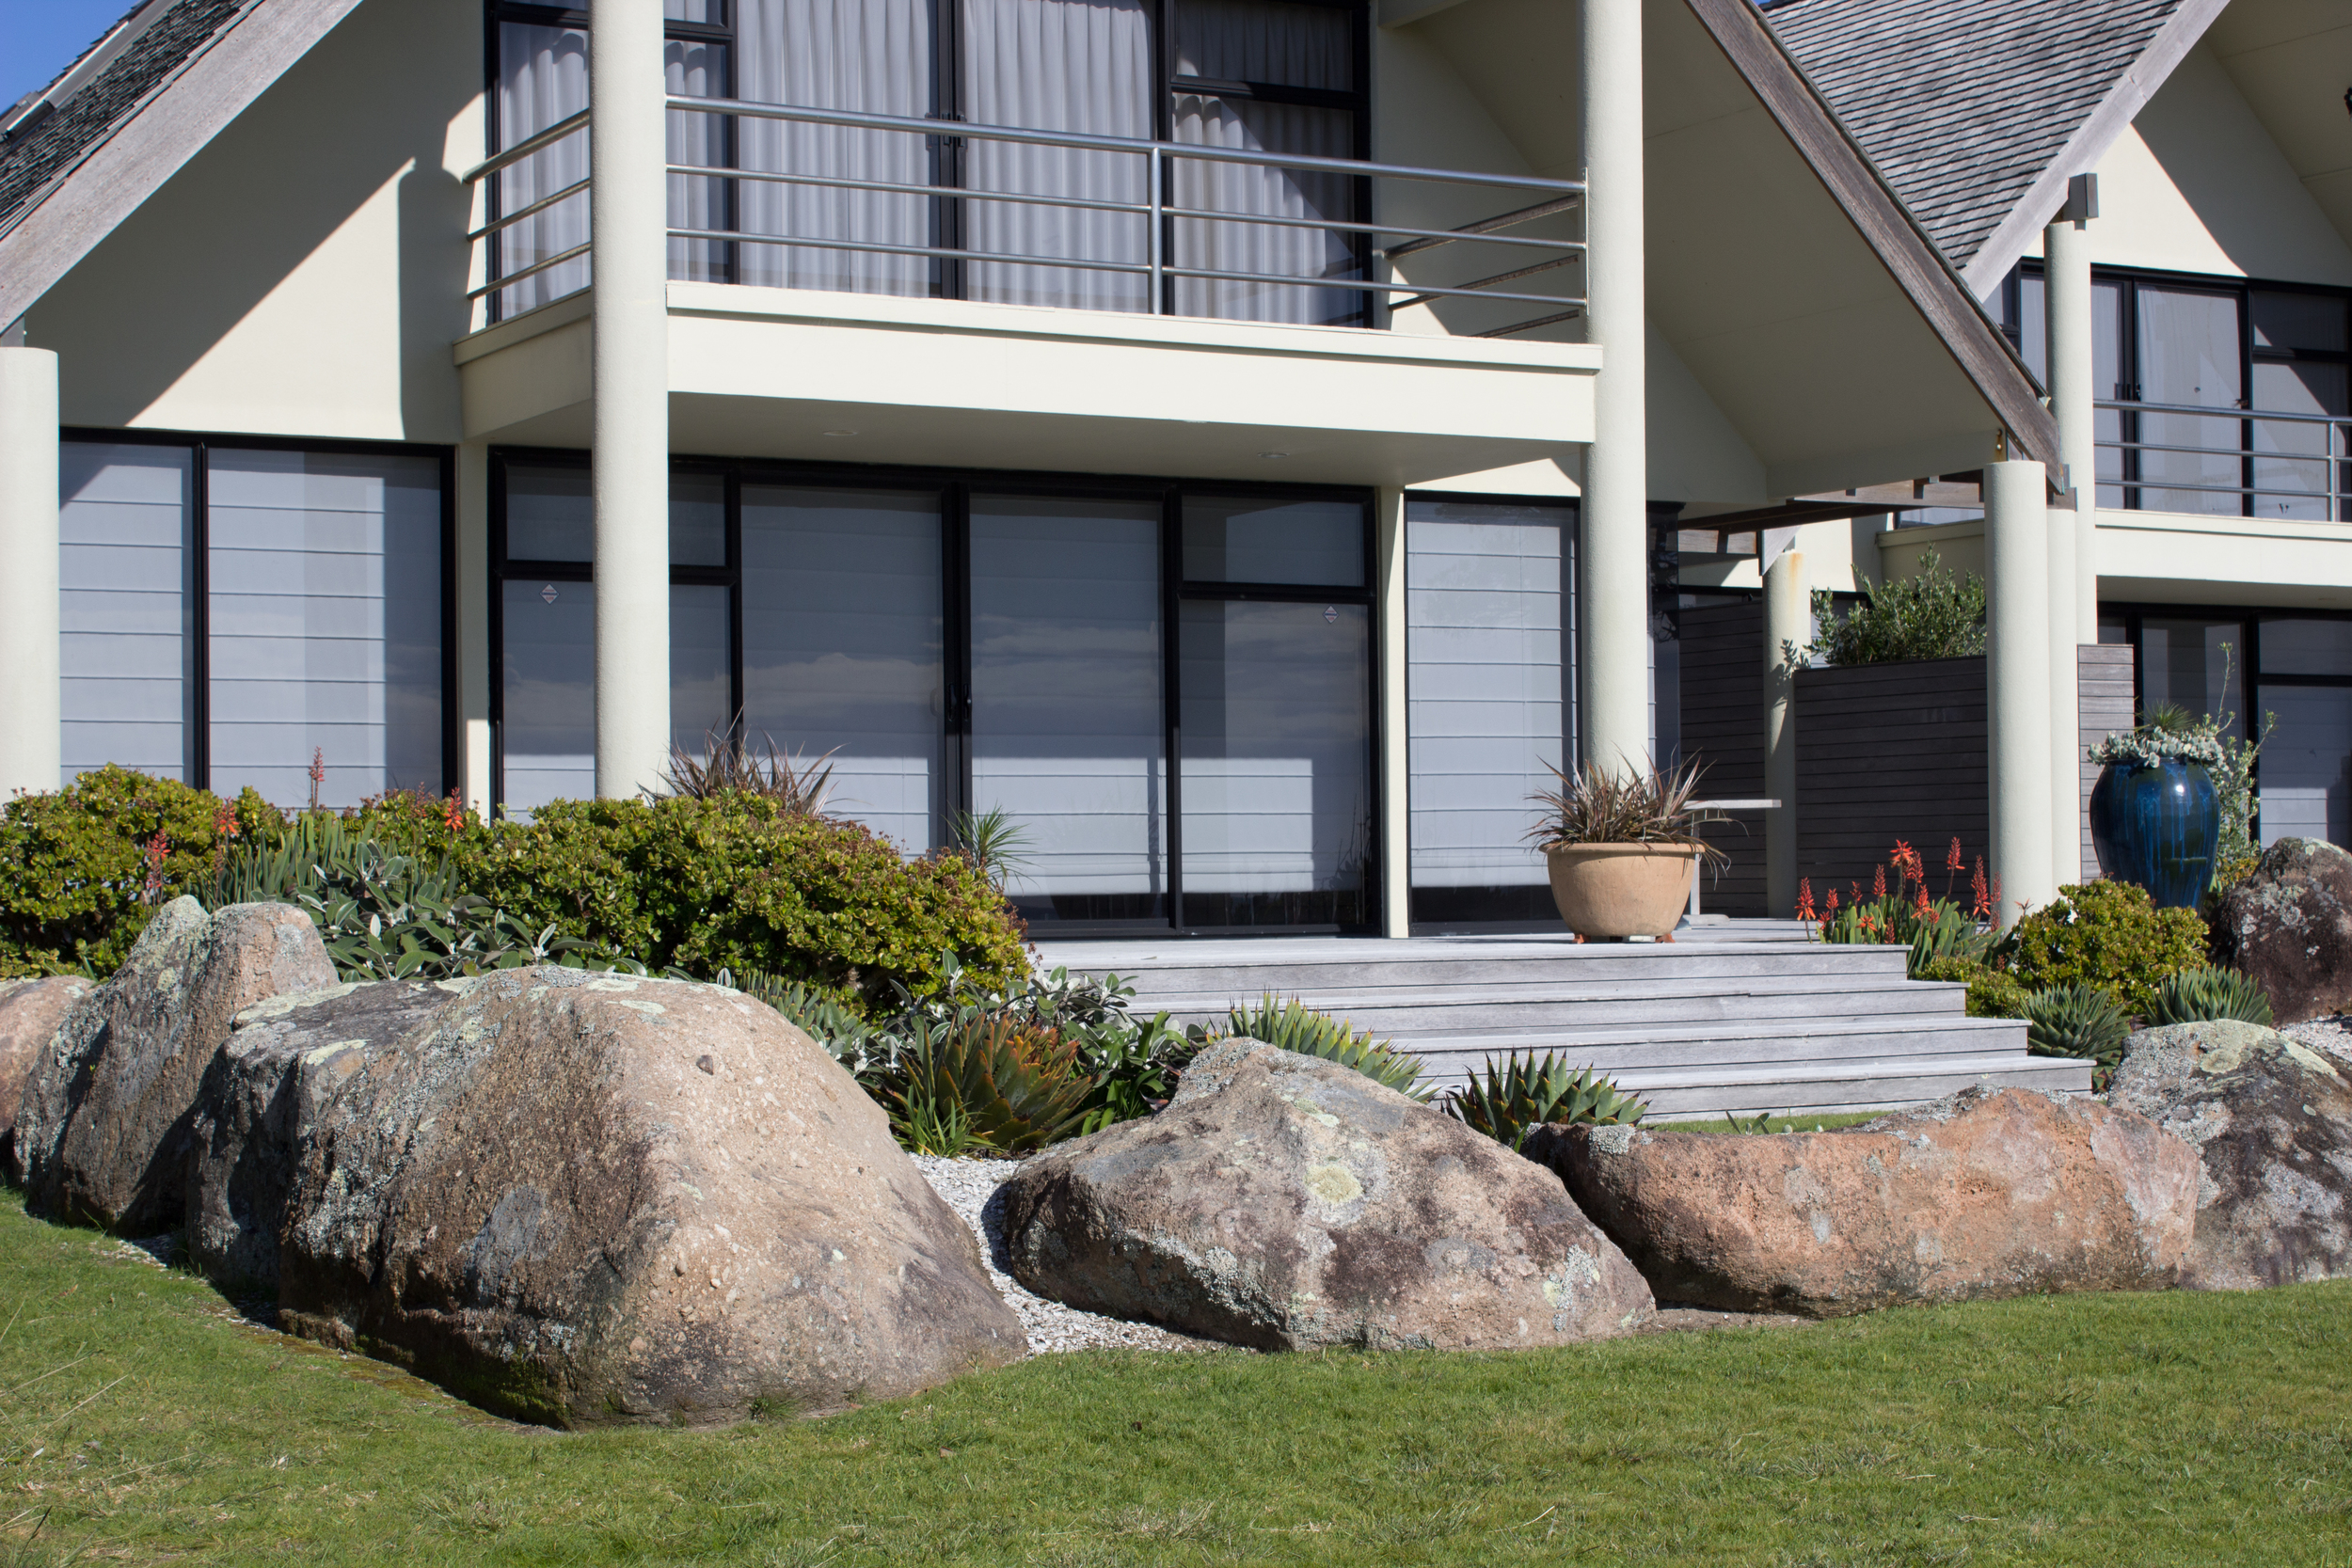 Rocks create a natural border around the front of the property